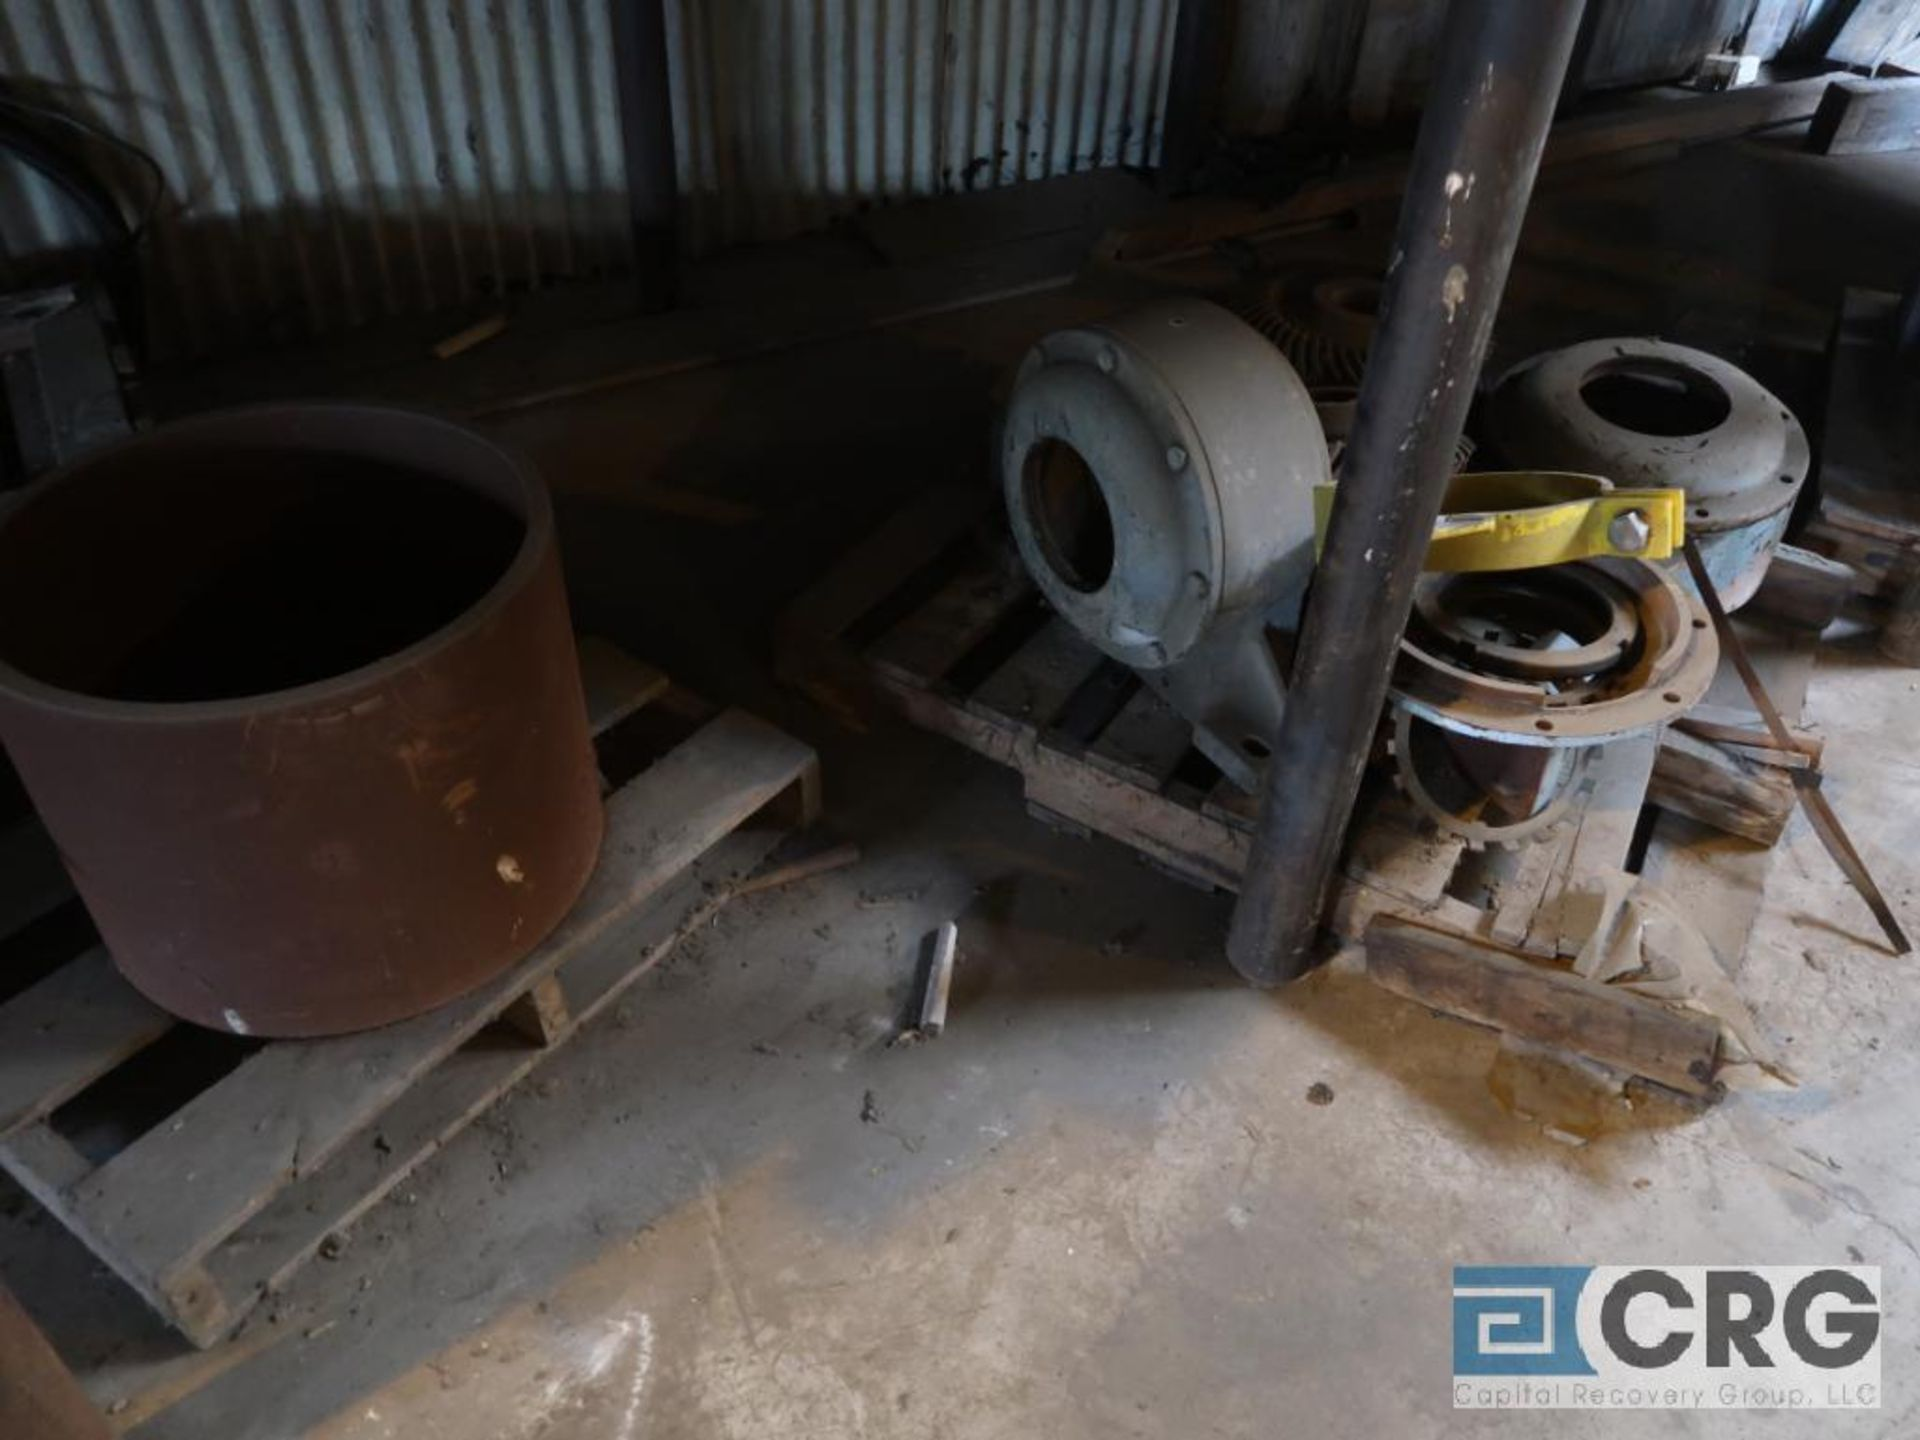 Lot of assorted motor, gear bearing housing, gear drive on metal rack (Next Bay Cage Area) - Image 11 of 16